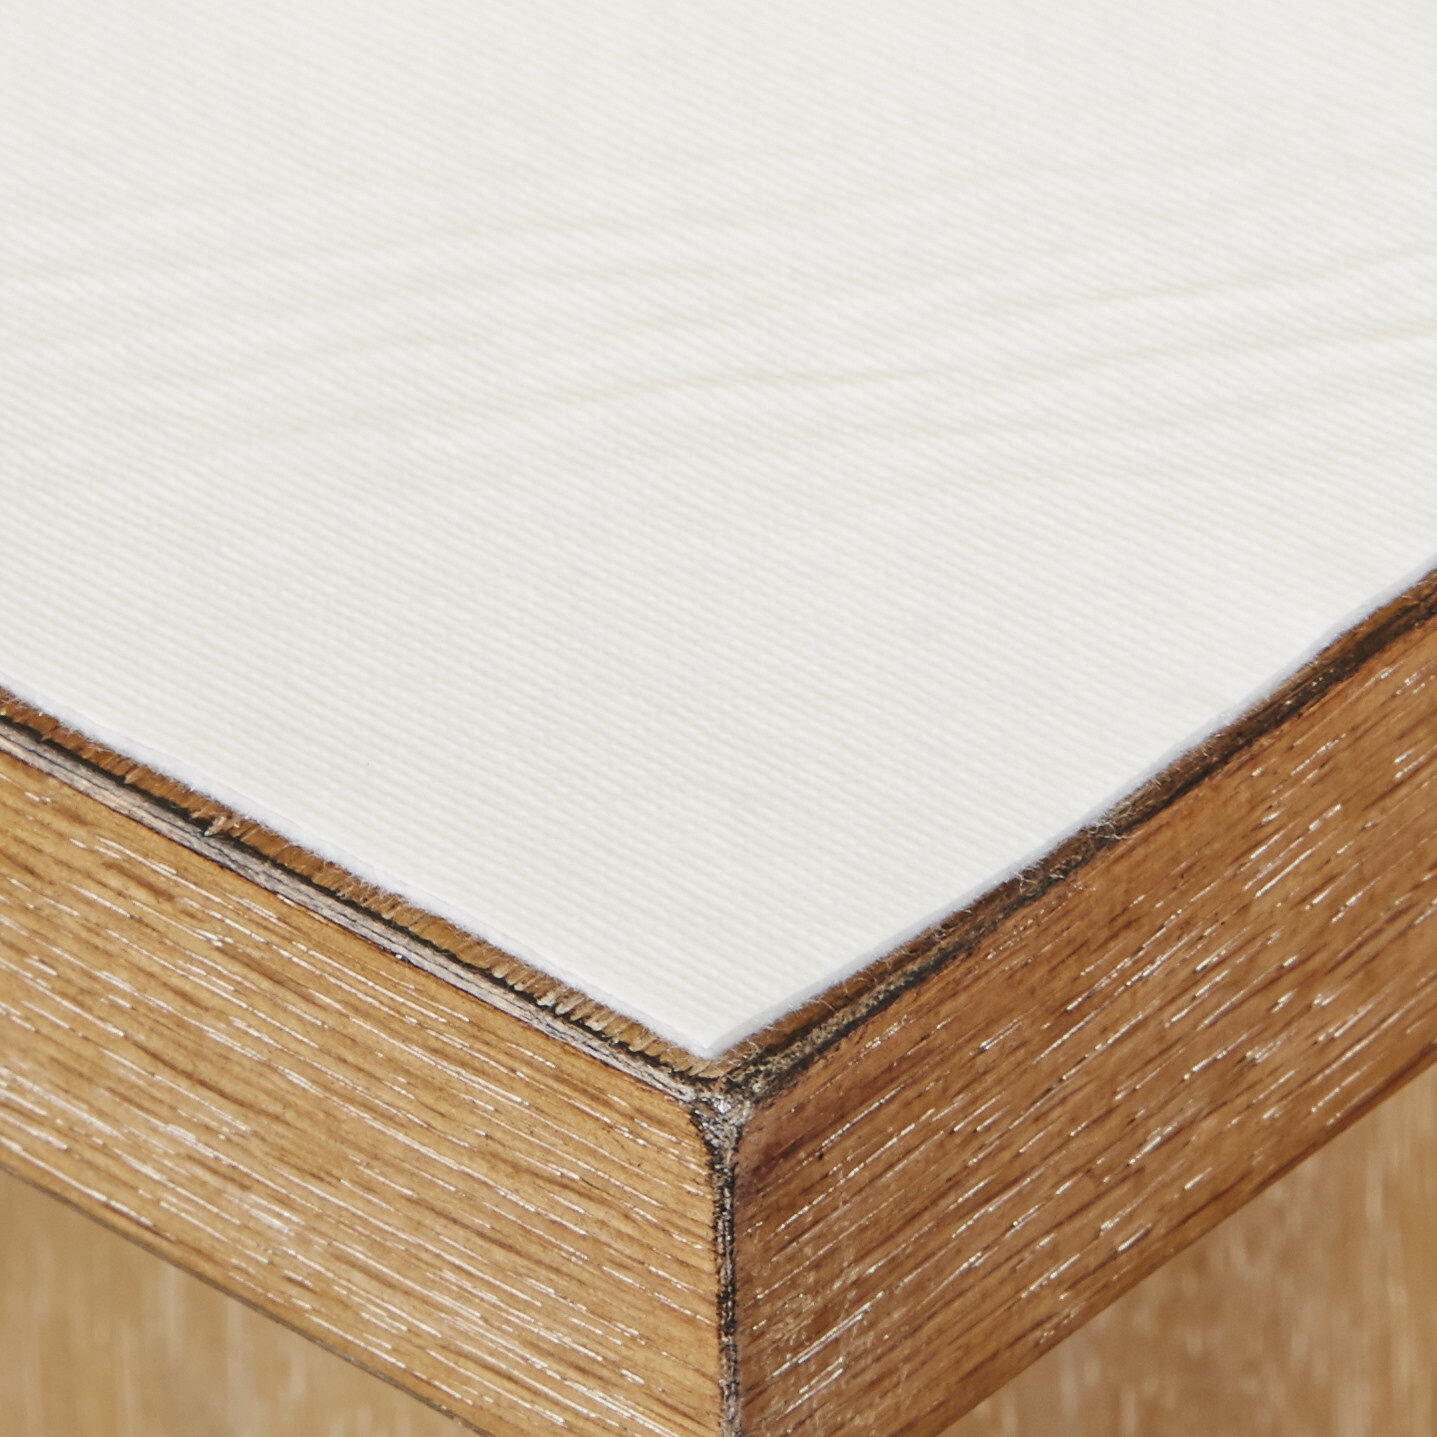 Heat Resistant Beige Duty Table Protector Thick Table Felt.